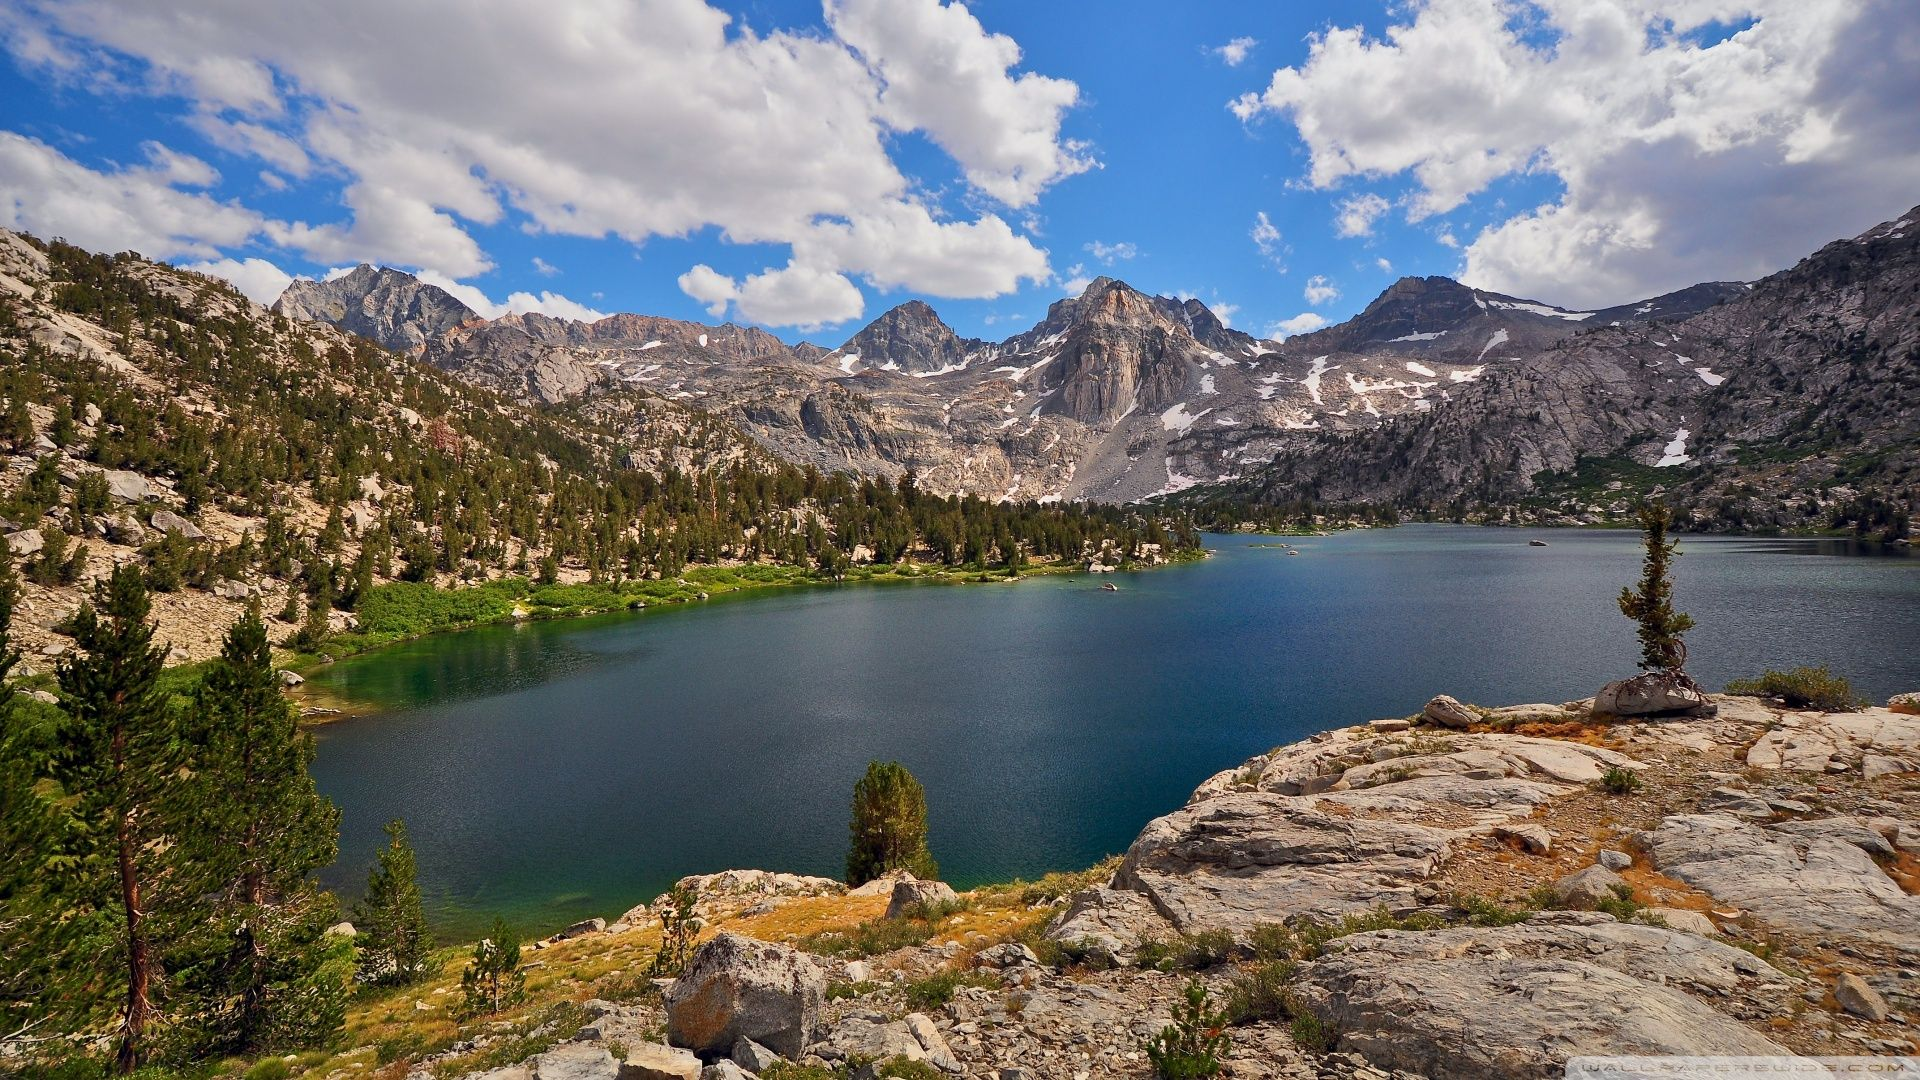 60 Sequoia National Park Wallpapers   Download at WallpaperBro 1920x1080